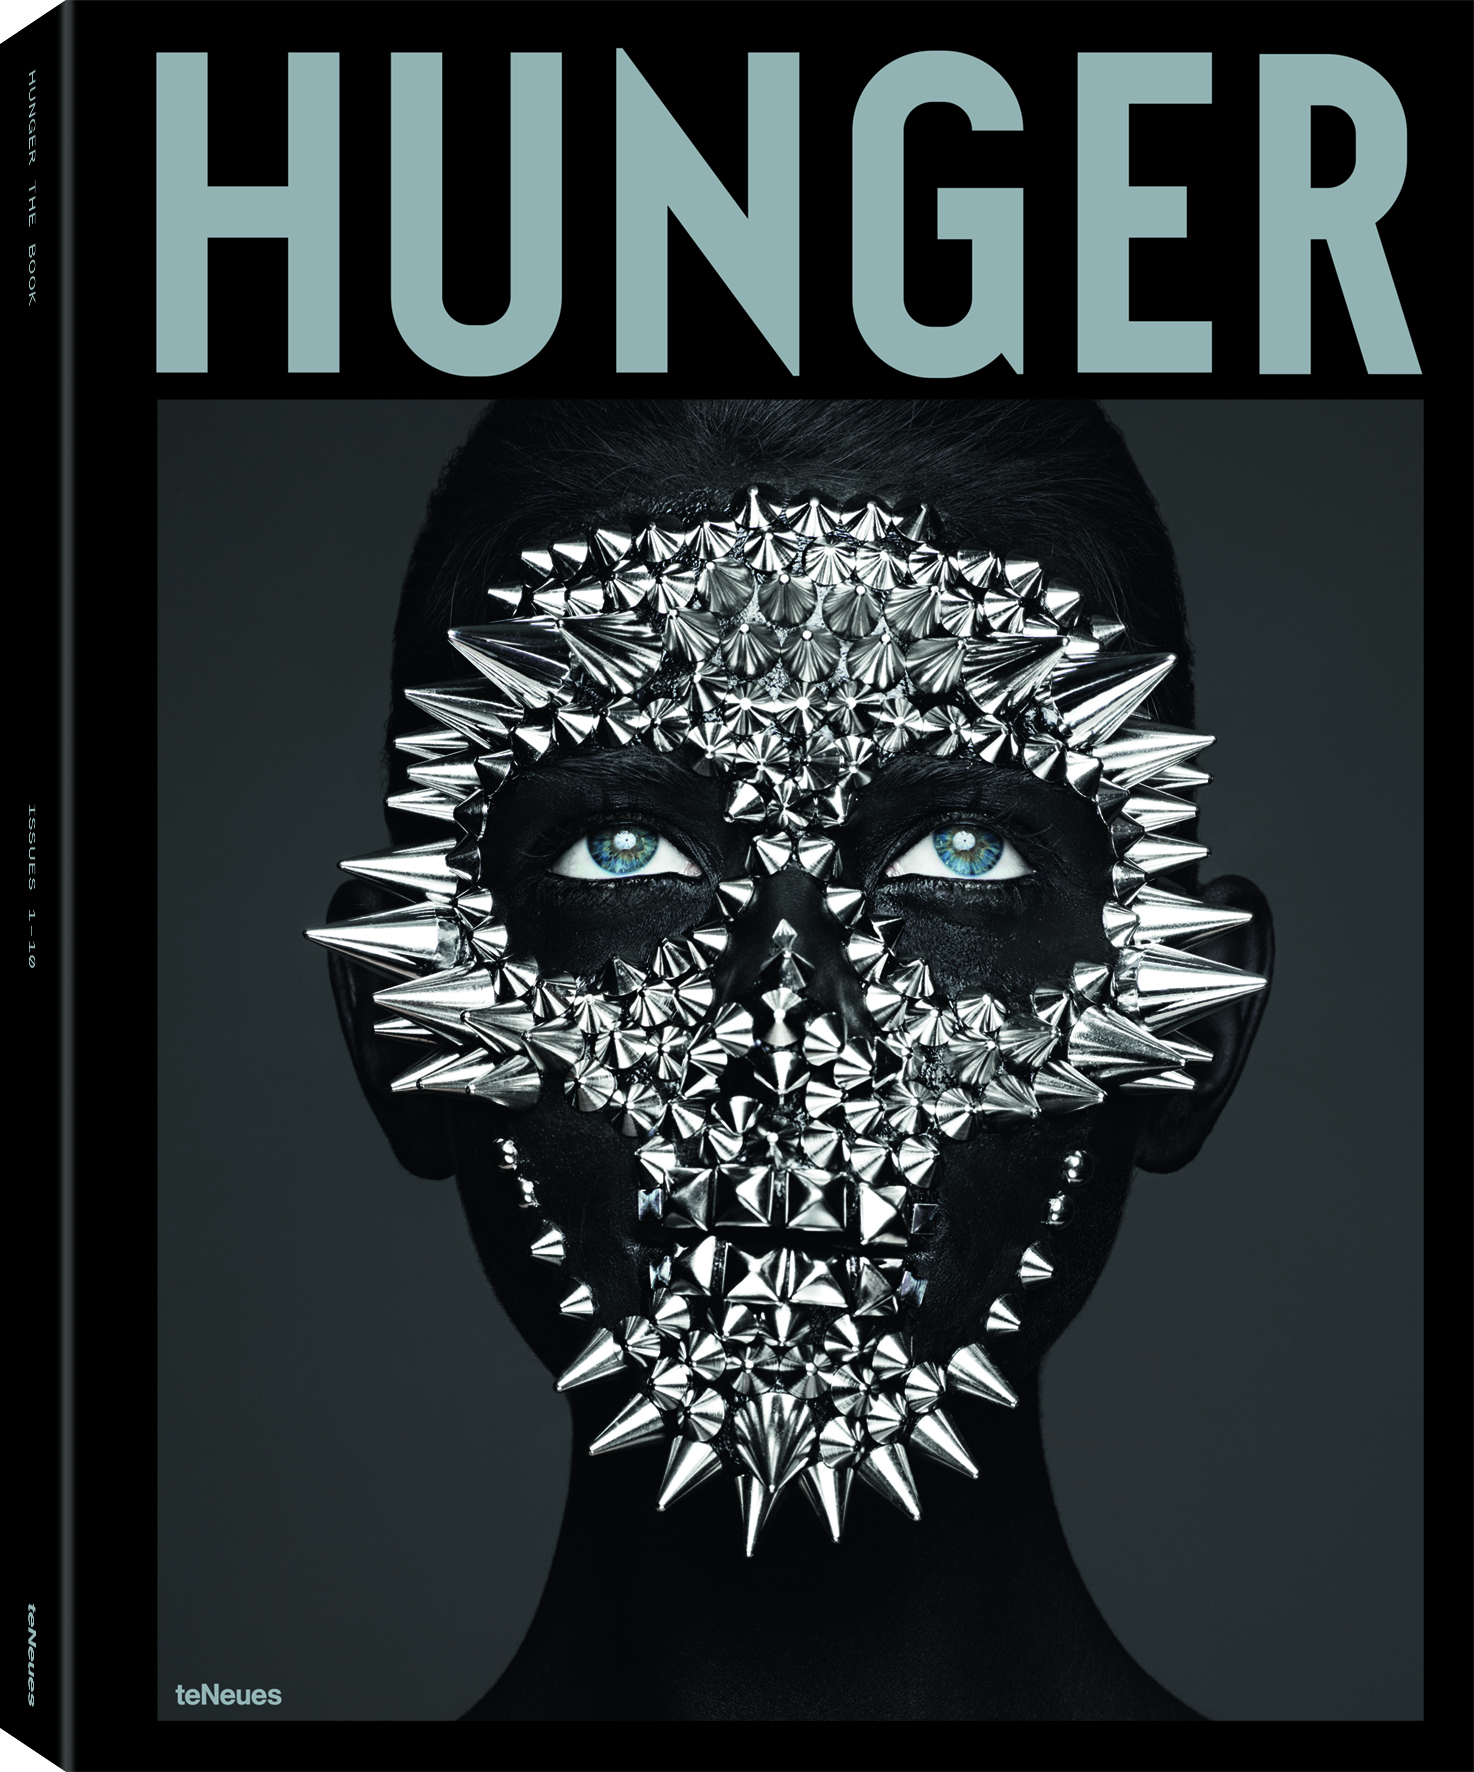 © The Hunger Book curated by Rankin, to be published by teNeues in September 2016, € 79,90,   www.teneues.com  , Photo © 2016 Rankin. All rights reserved.